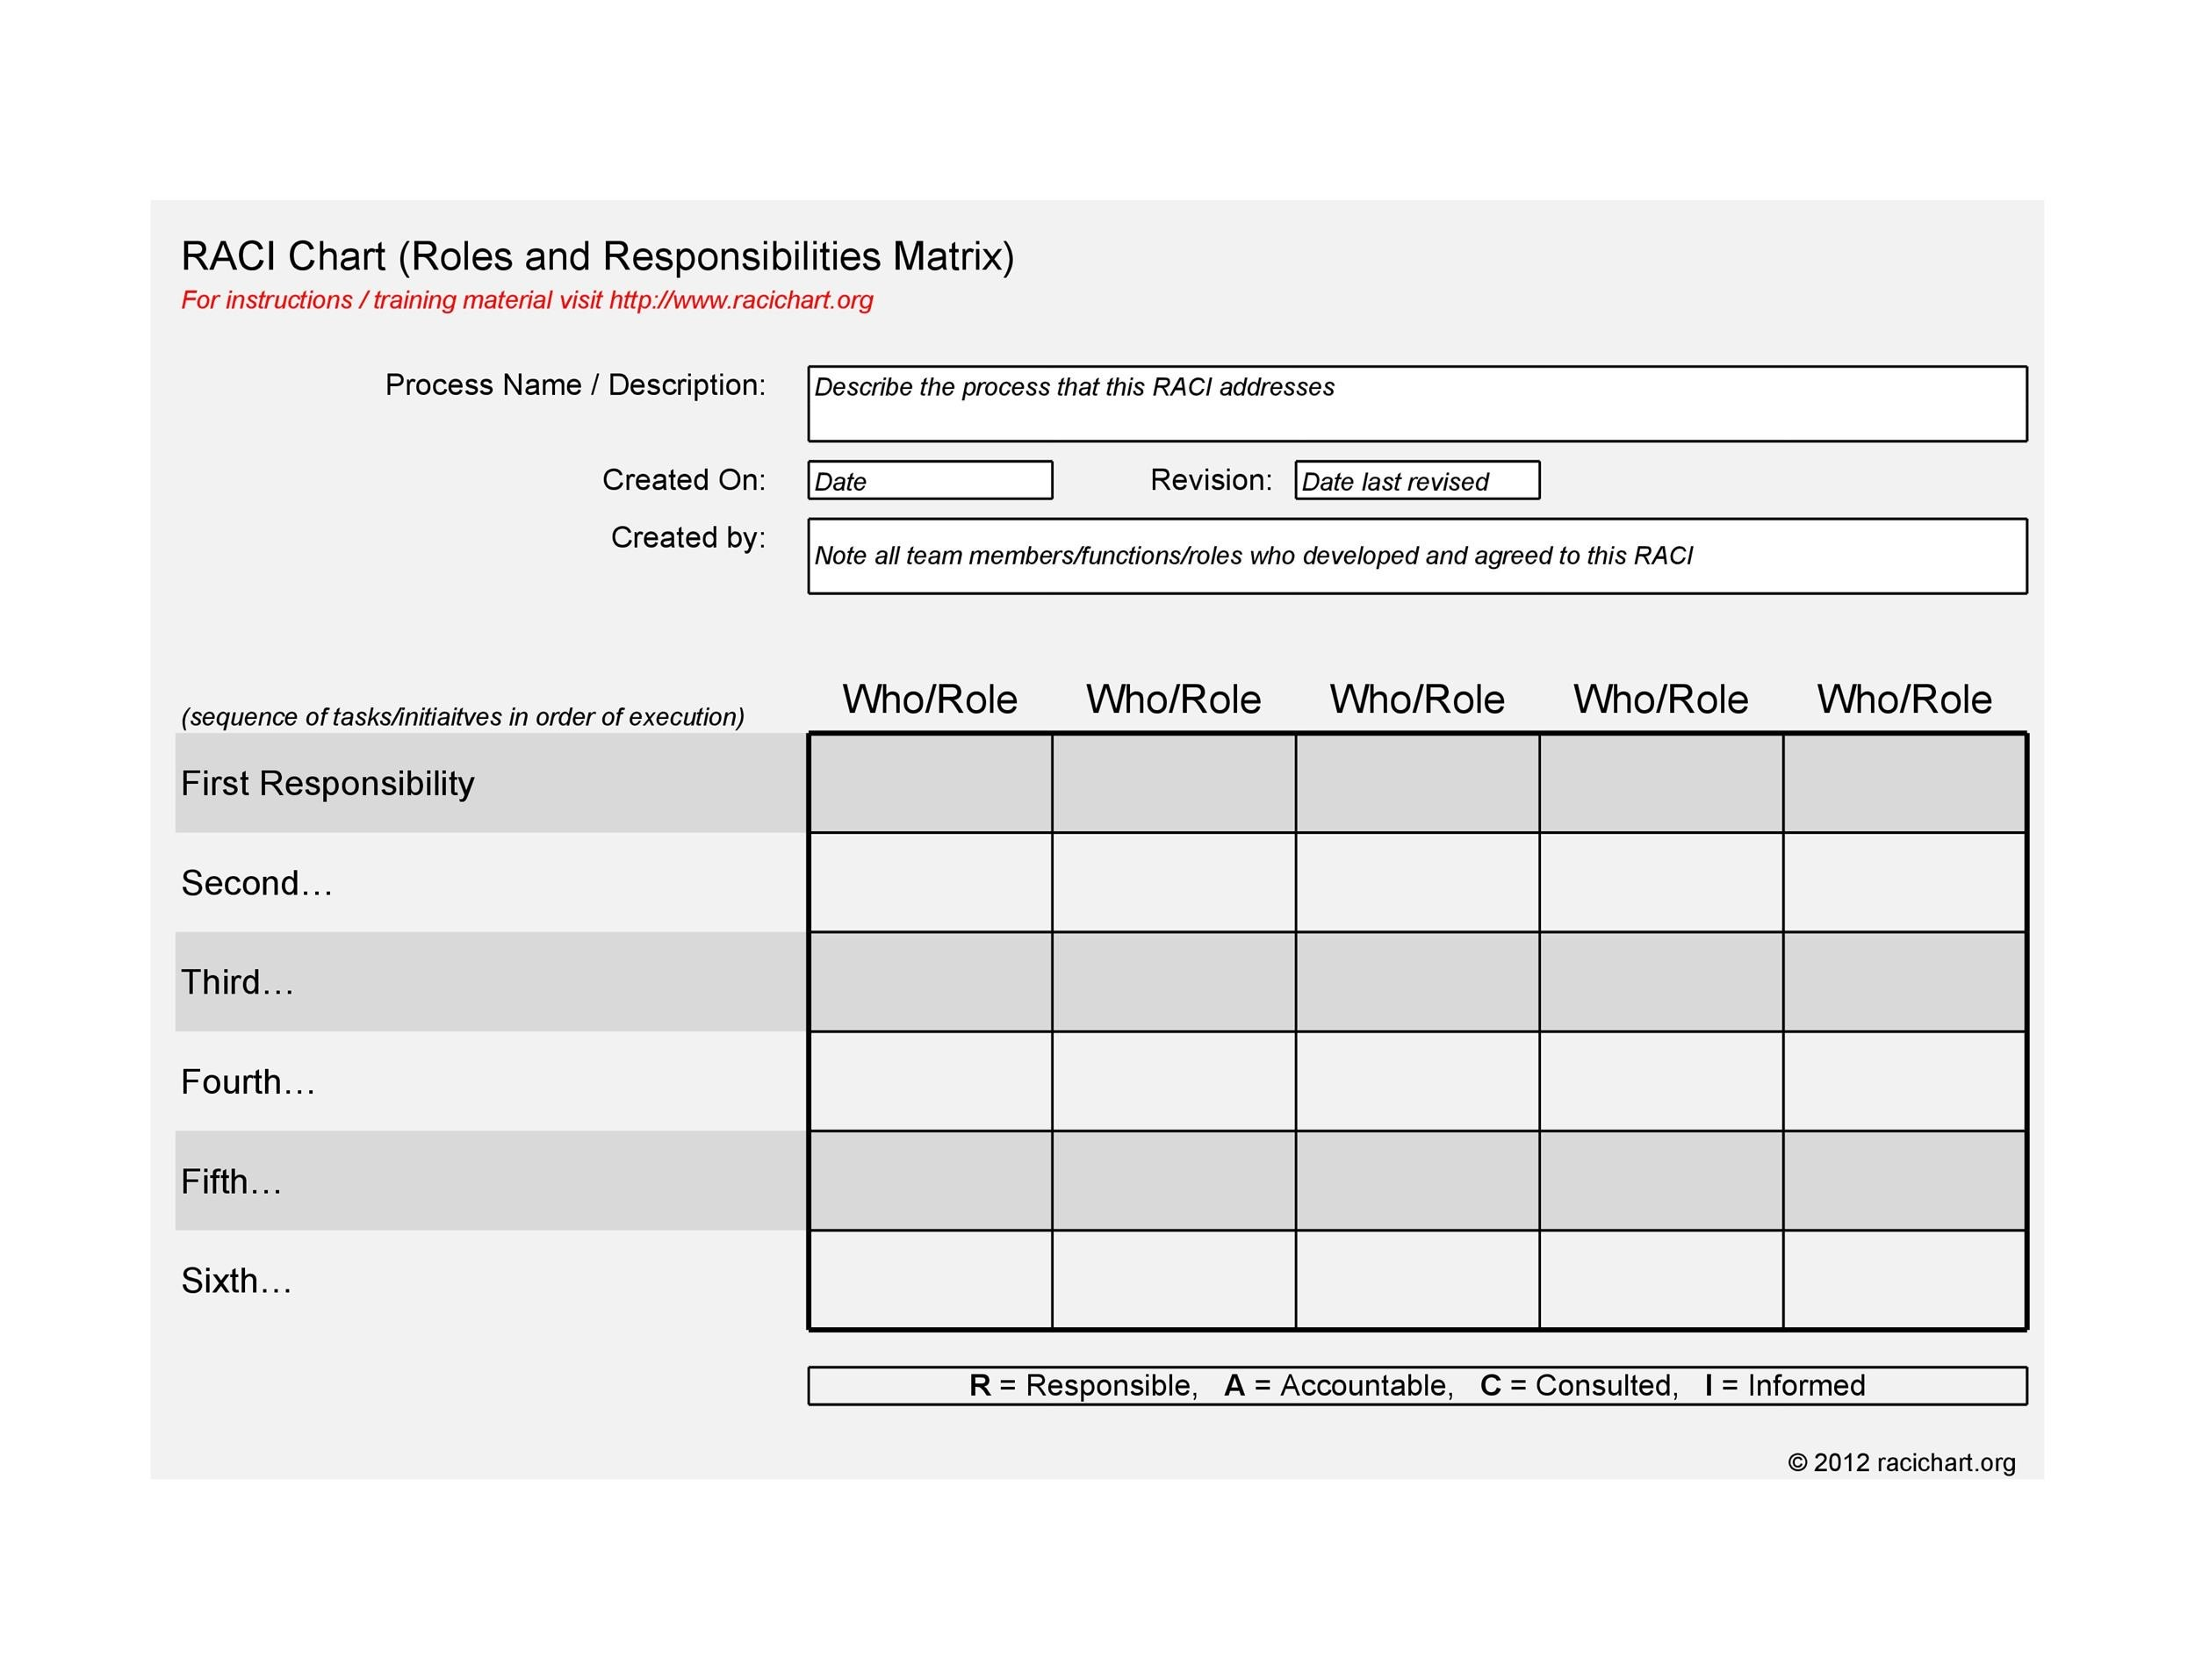 21 Free RACI Chart Templates Template Lab – Roles and Responsibilities Chart